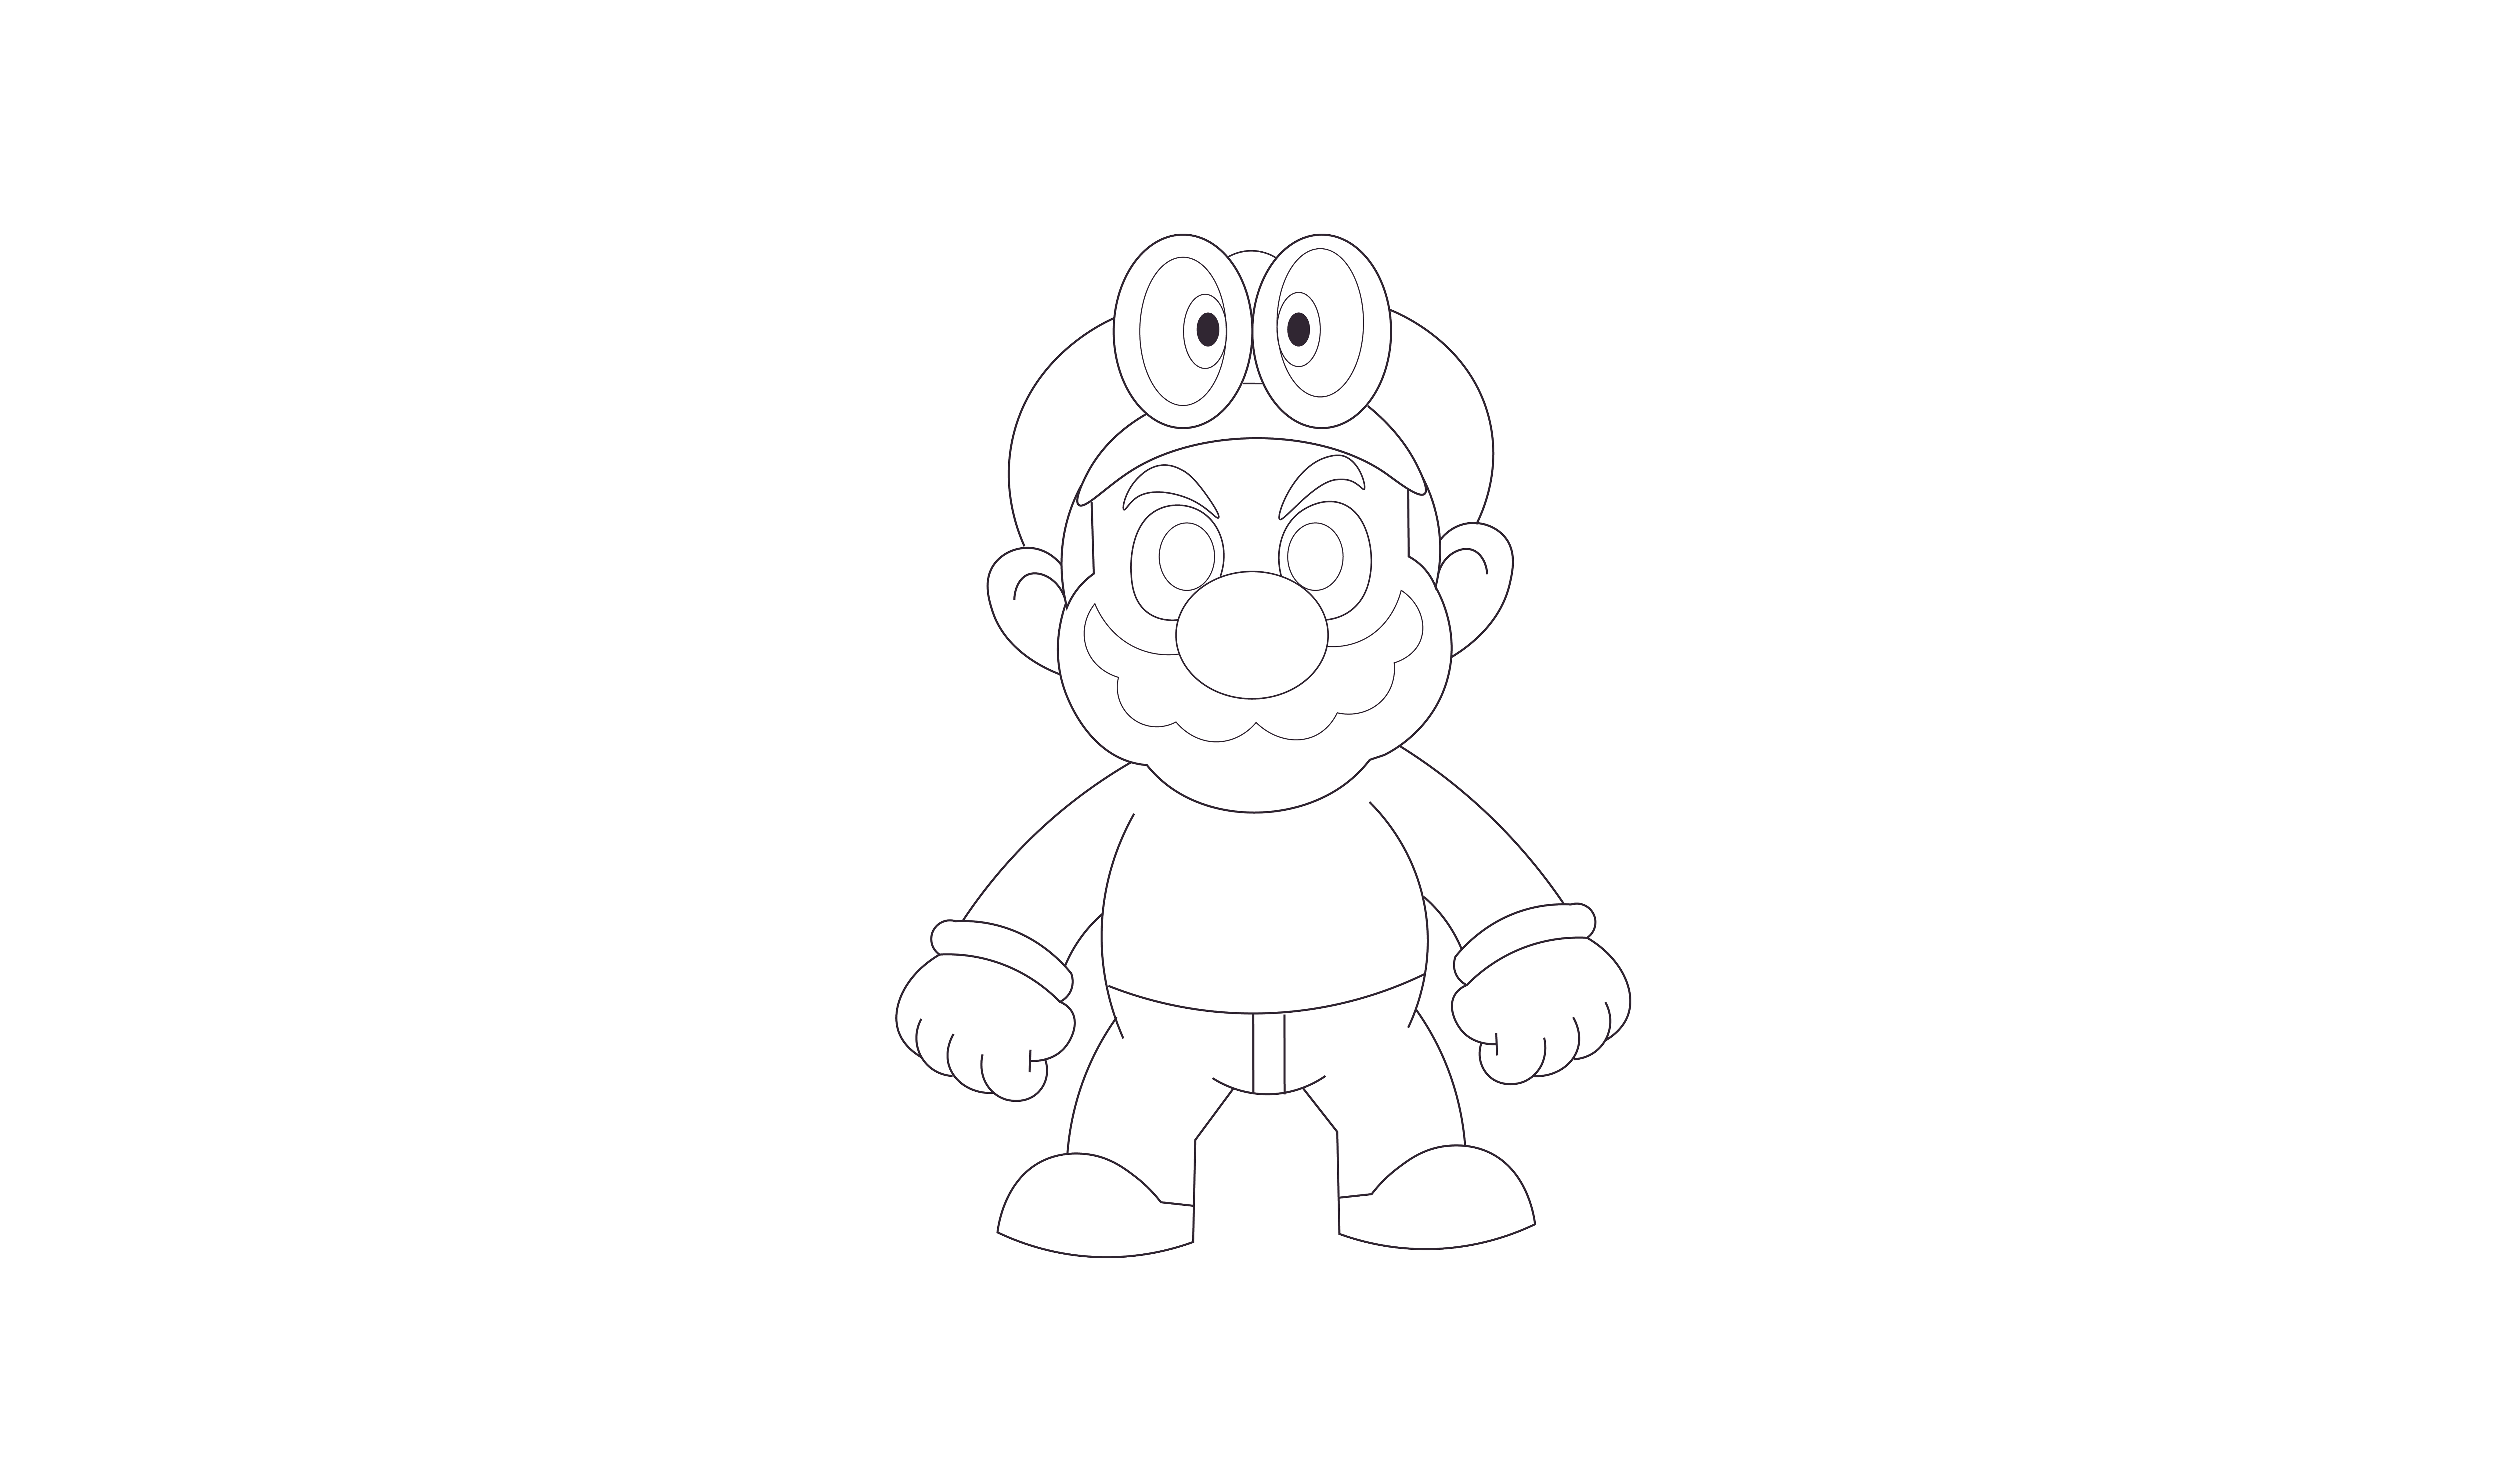 Pin by Shawn Howto on How To Draw Super Mario Odyssey ...